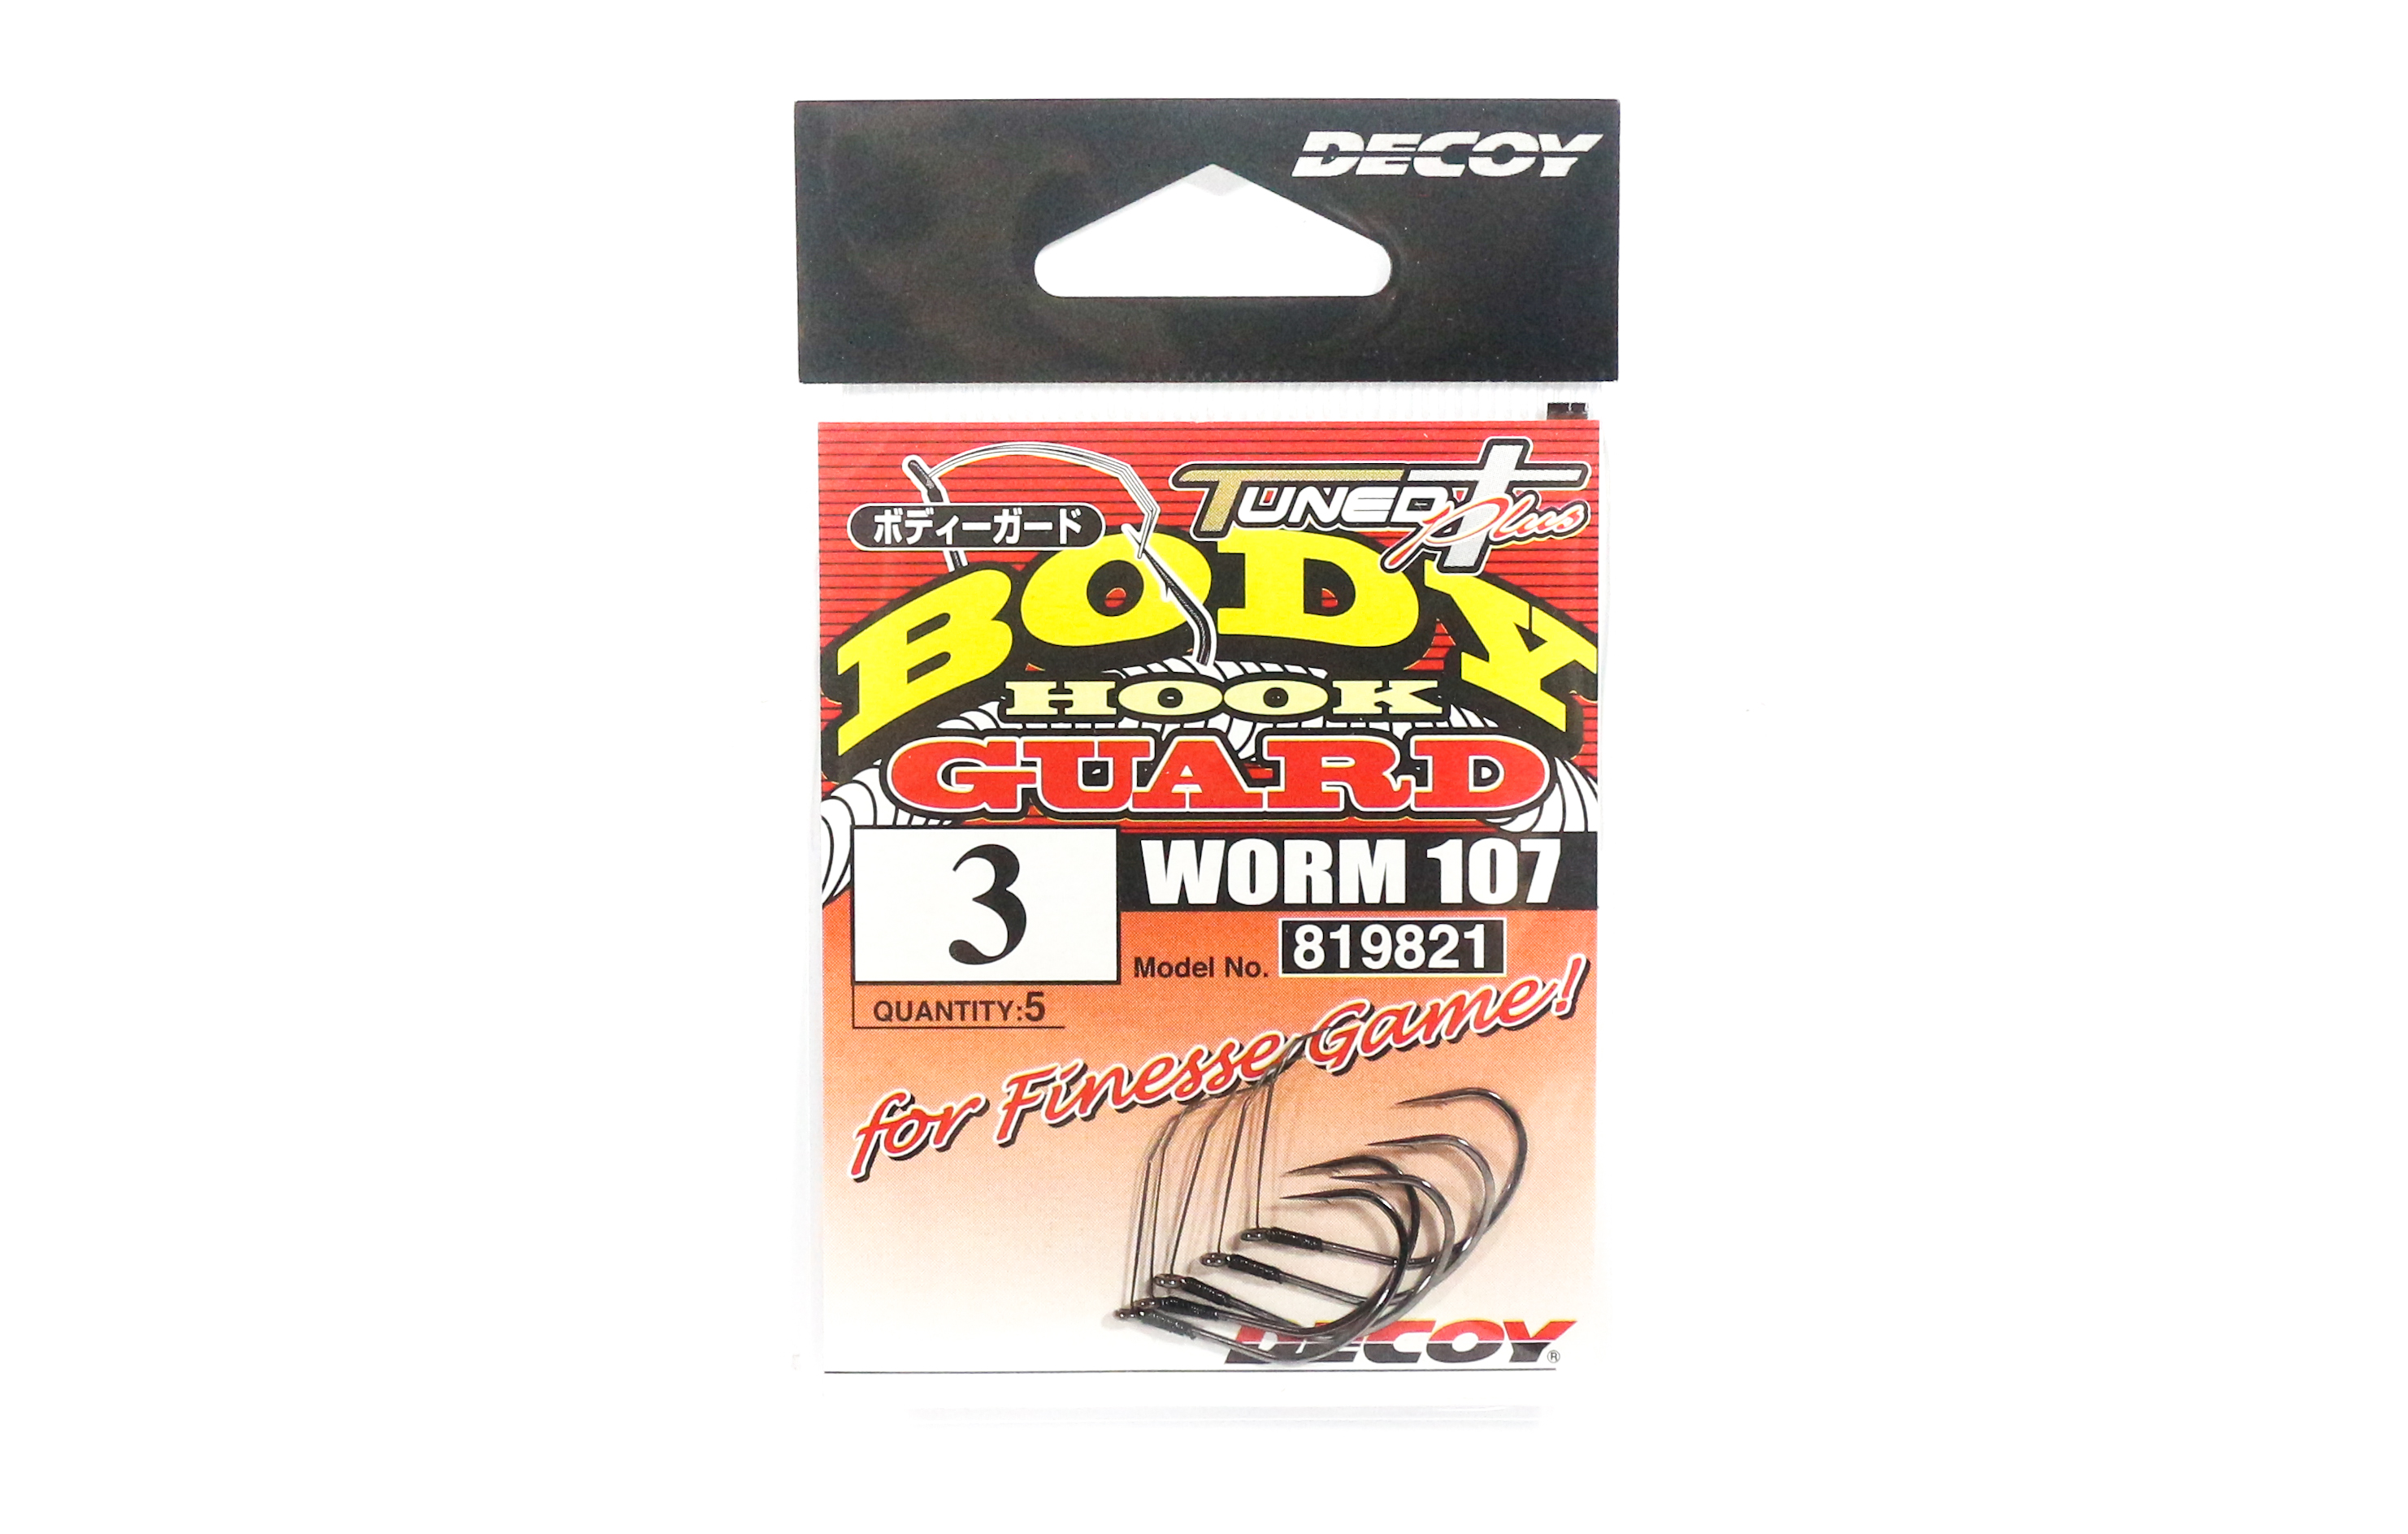 Decoy Worm 107 Body Guard Hook for Wacky Rig Size 3 (9821)